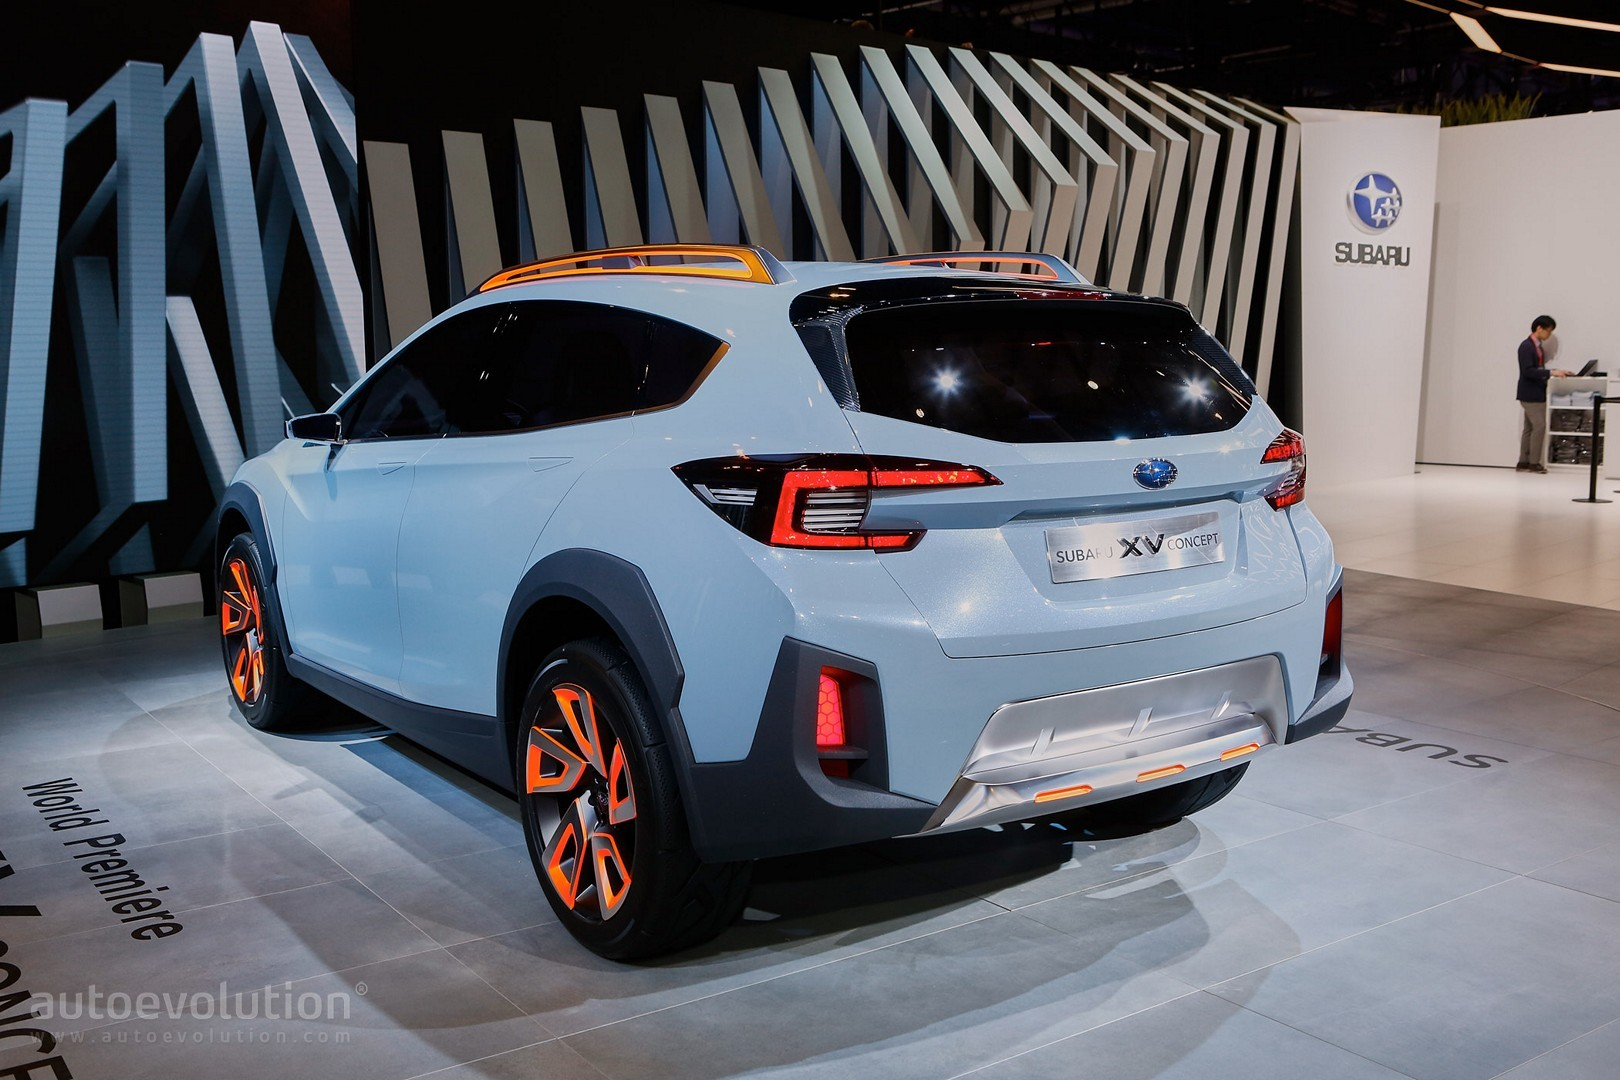 2017 subaru xv crosstrek previewed by this rugged concept in geneva autoevolution. Black Bedroom Furniture Sets. Home Design Ideas